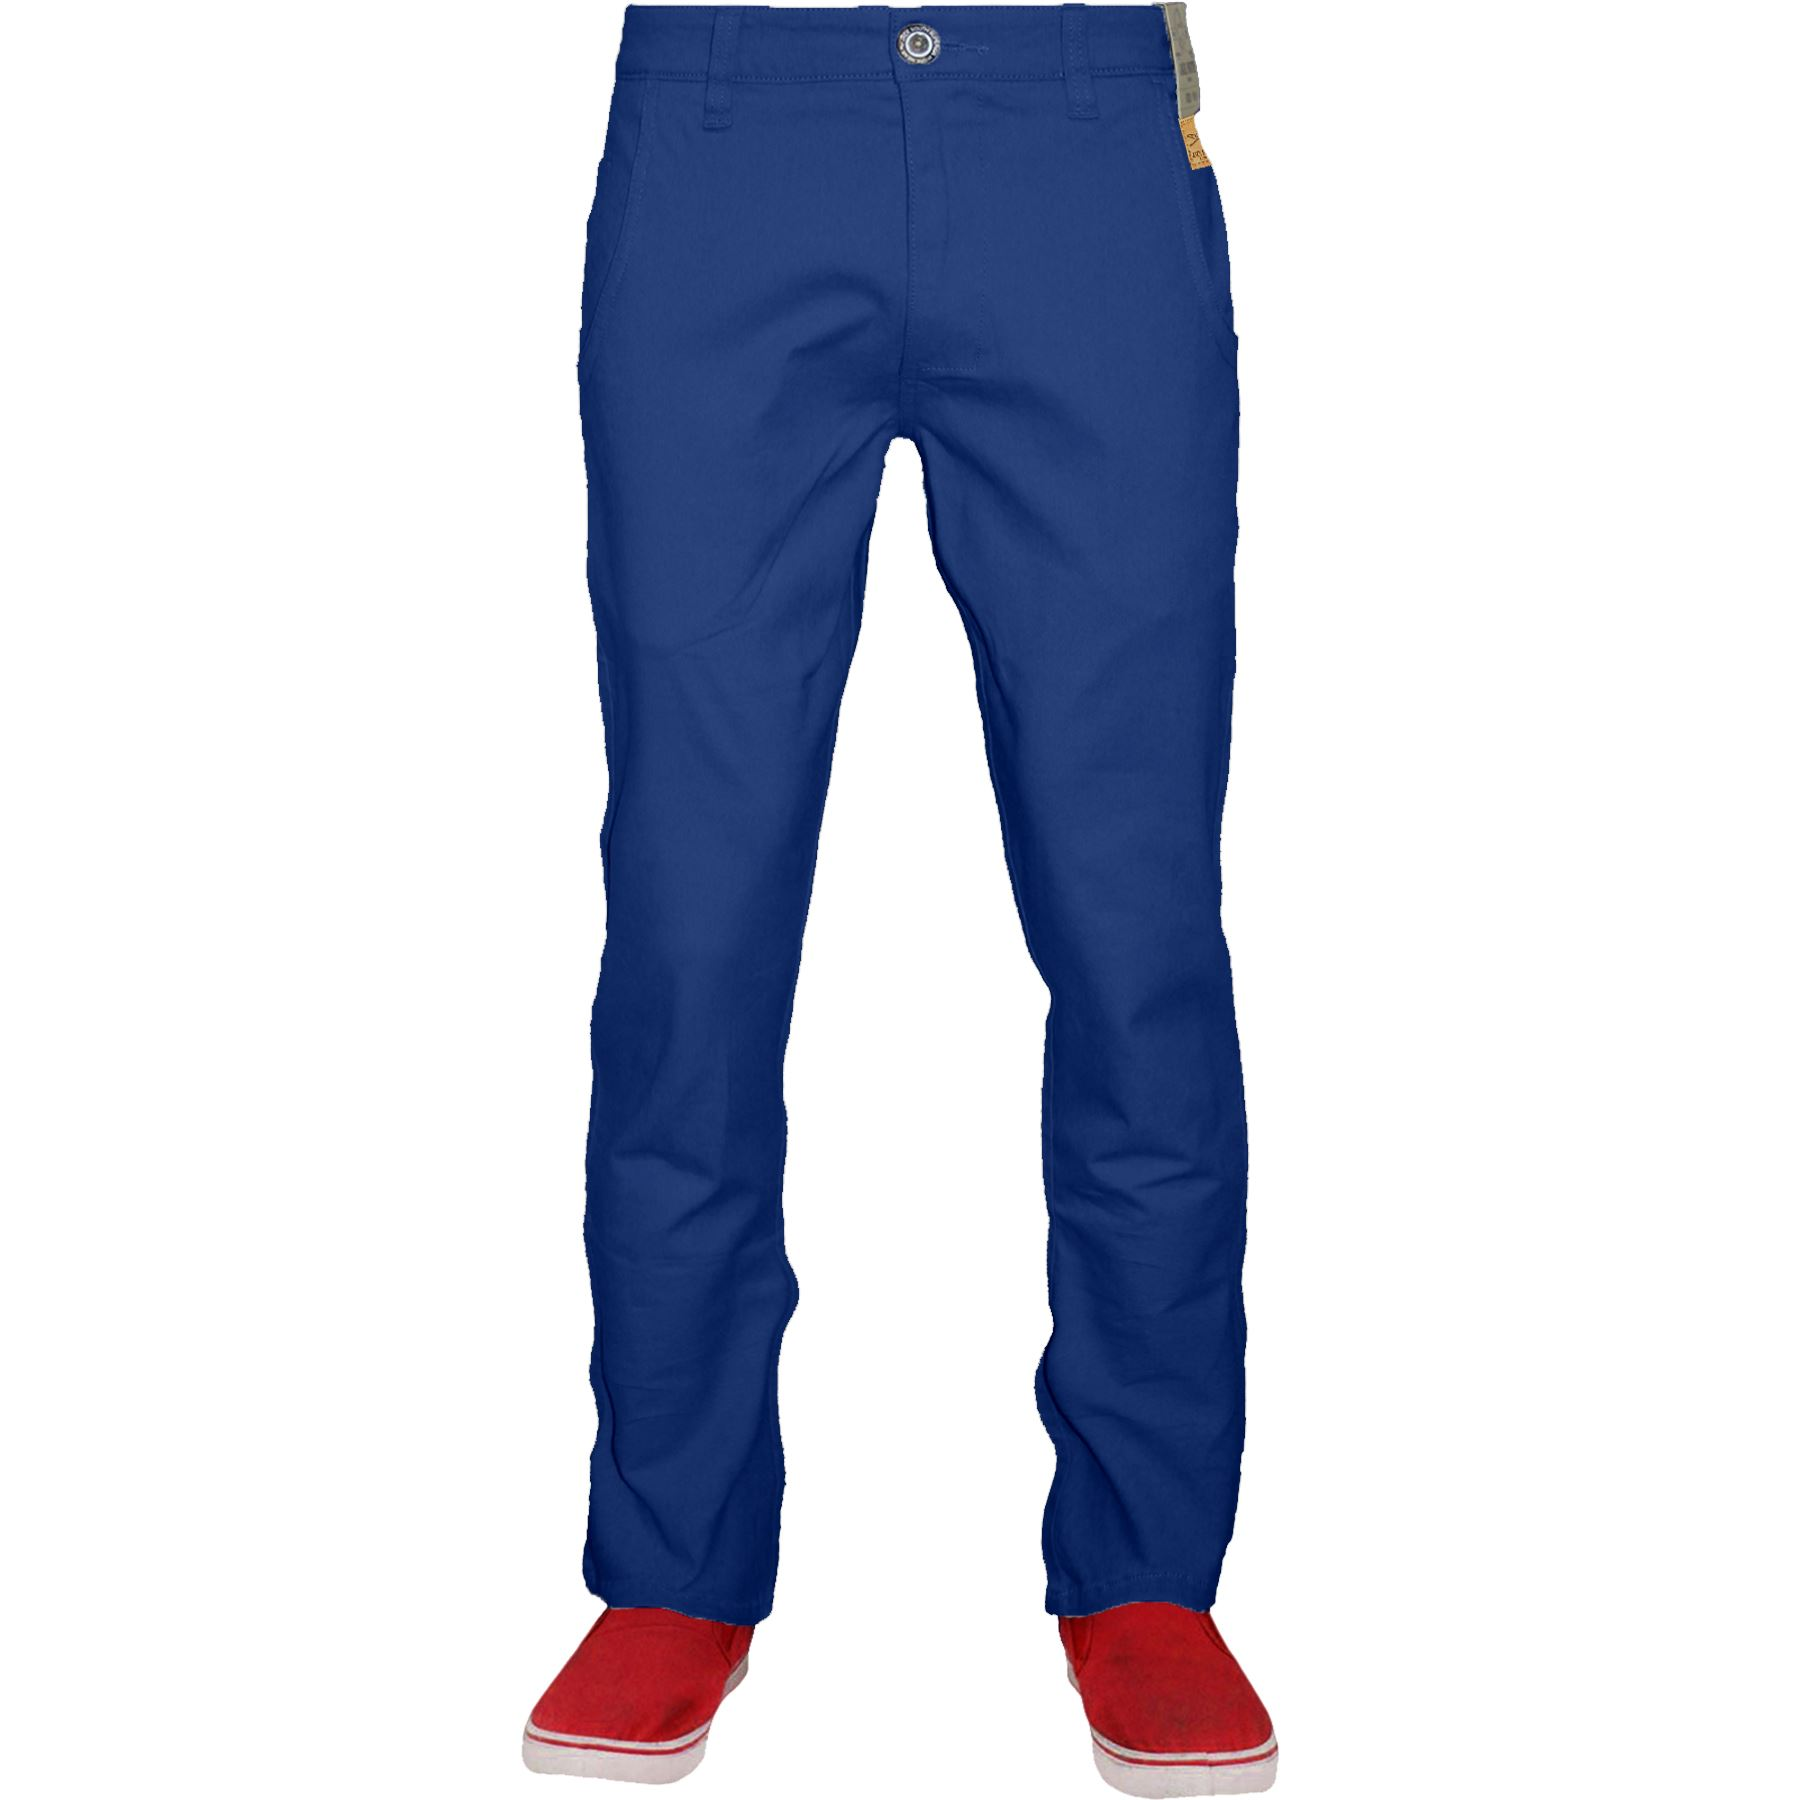 Mens-Chino-Classic-Regular-Fit-Trouser-Casual-Stretch-Spandex-Pants-Size-32-40 thumbnail 20